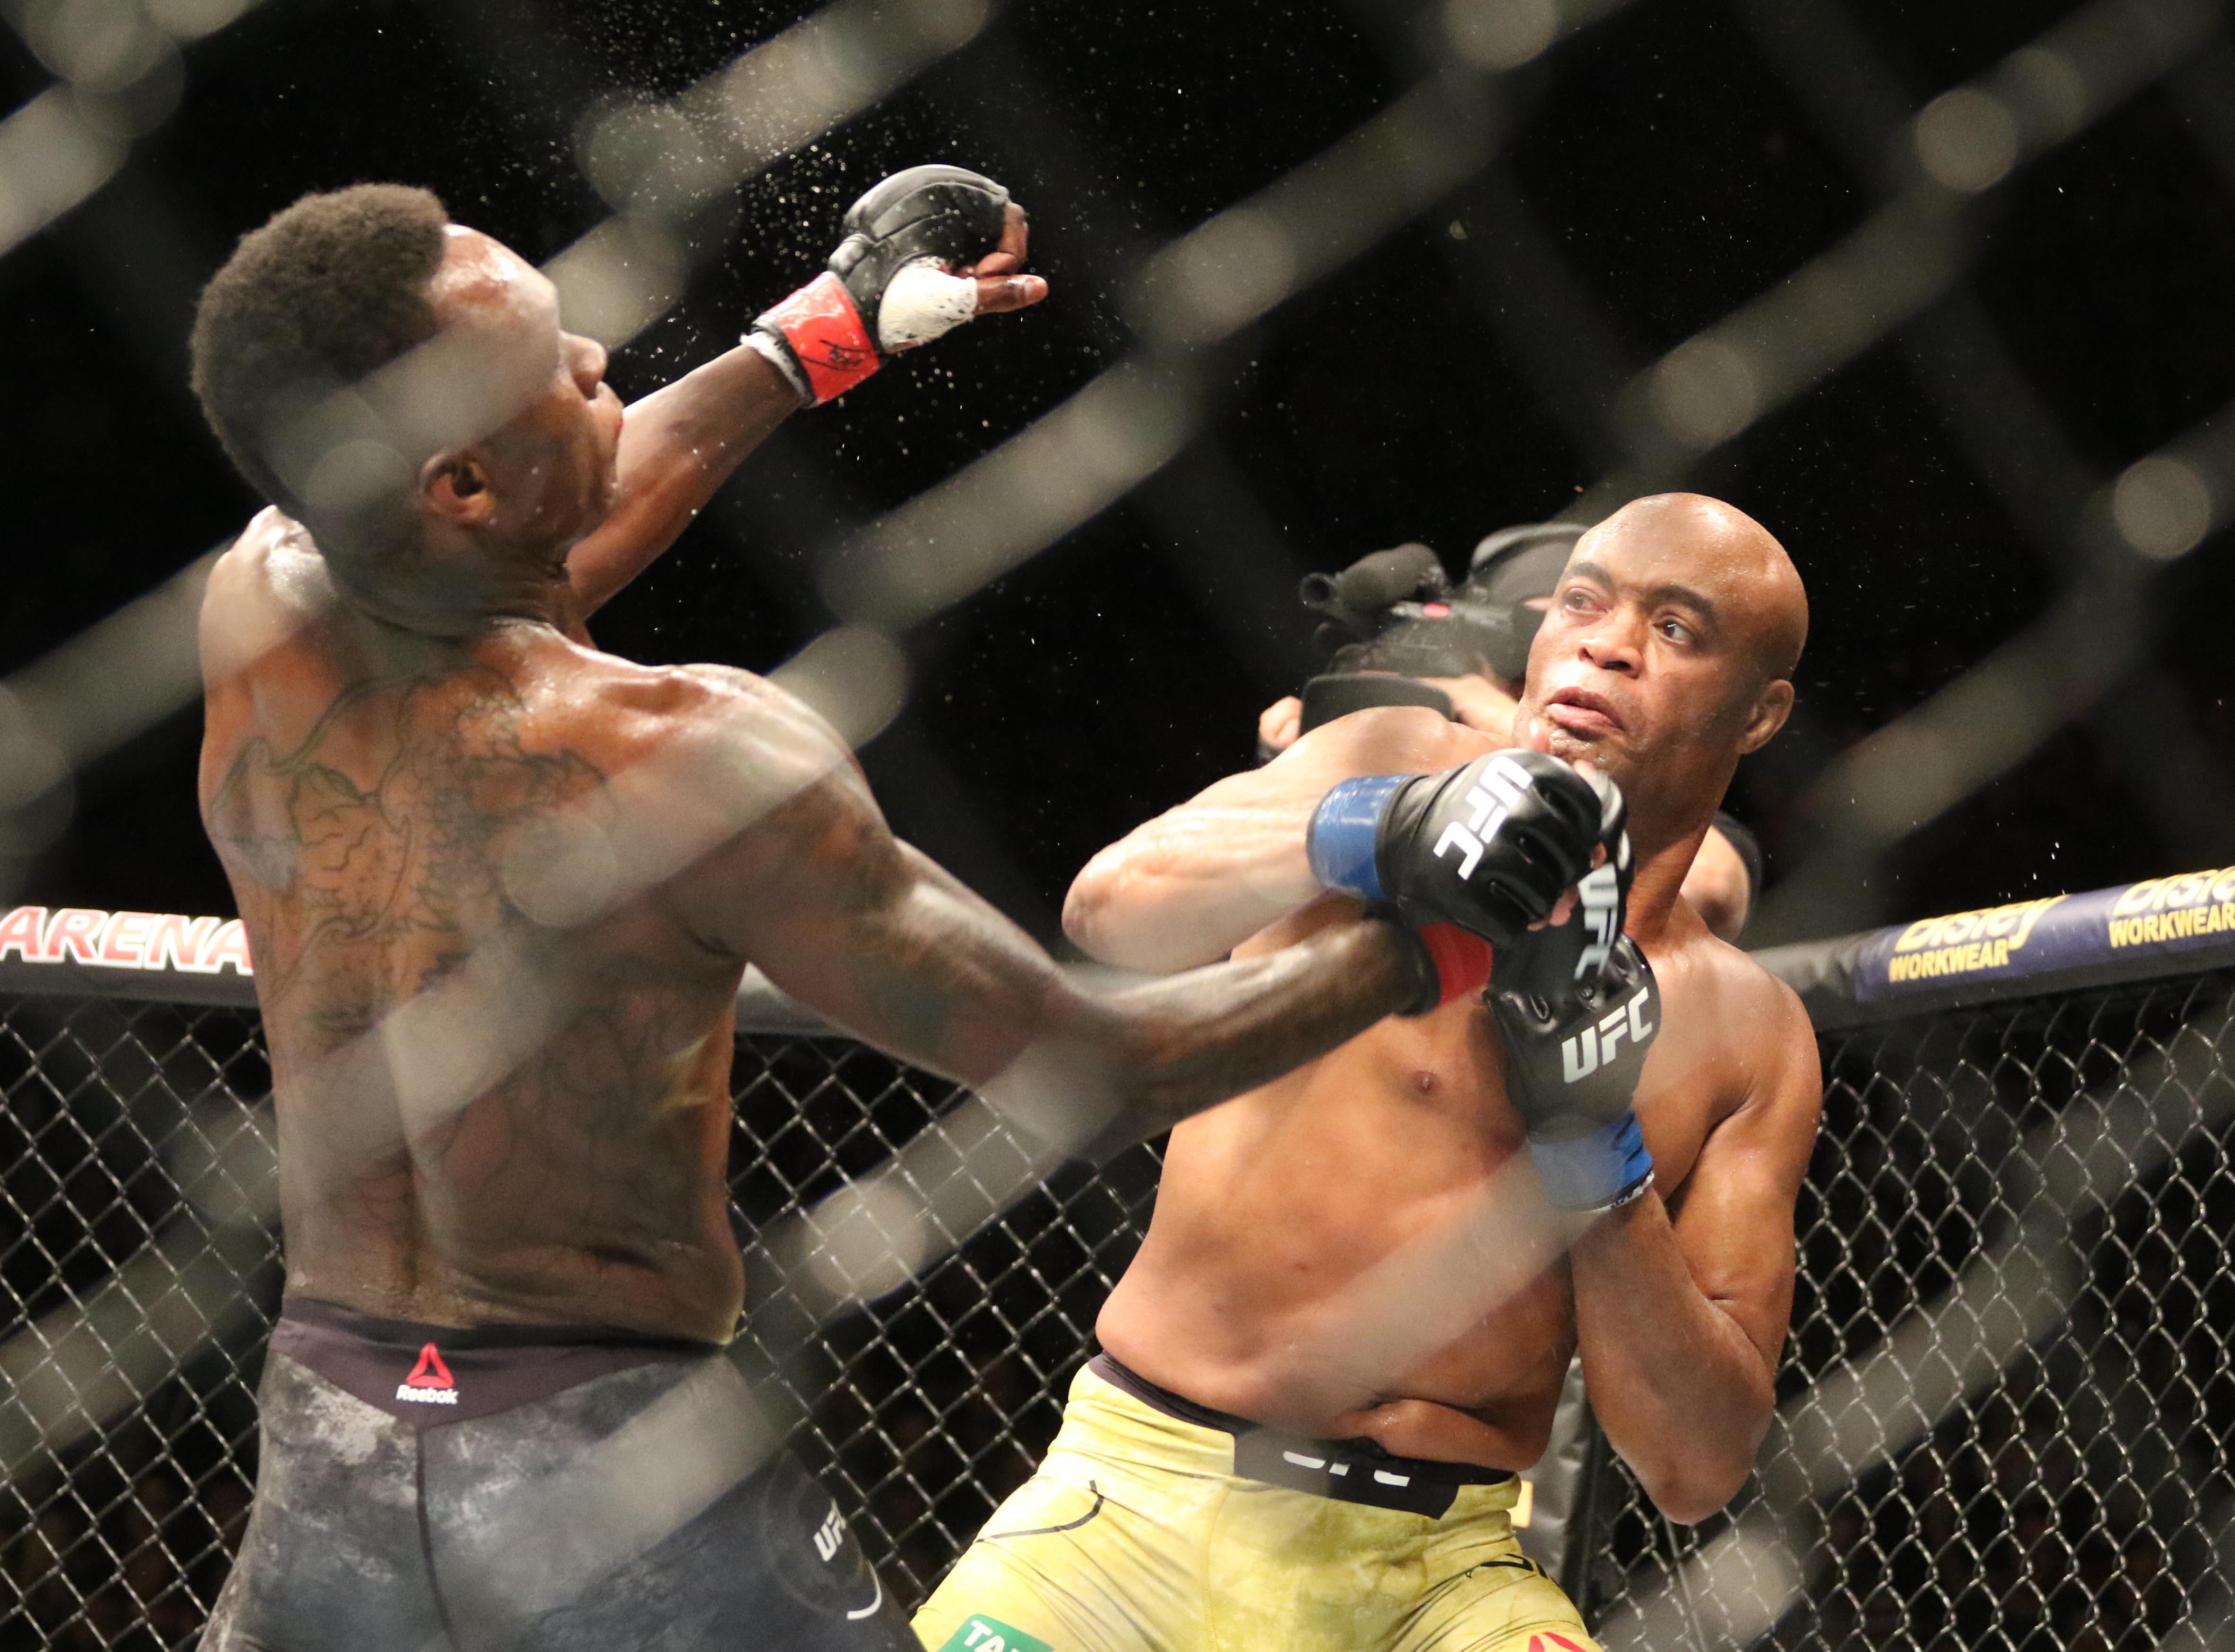 Israel Adesanya (red gloves) and Anderson Silva (blue gloves) fight during UFC 234 at Rod Laver Arena.